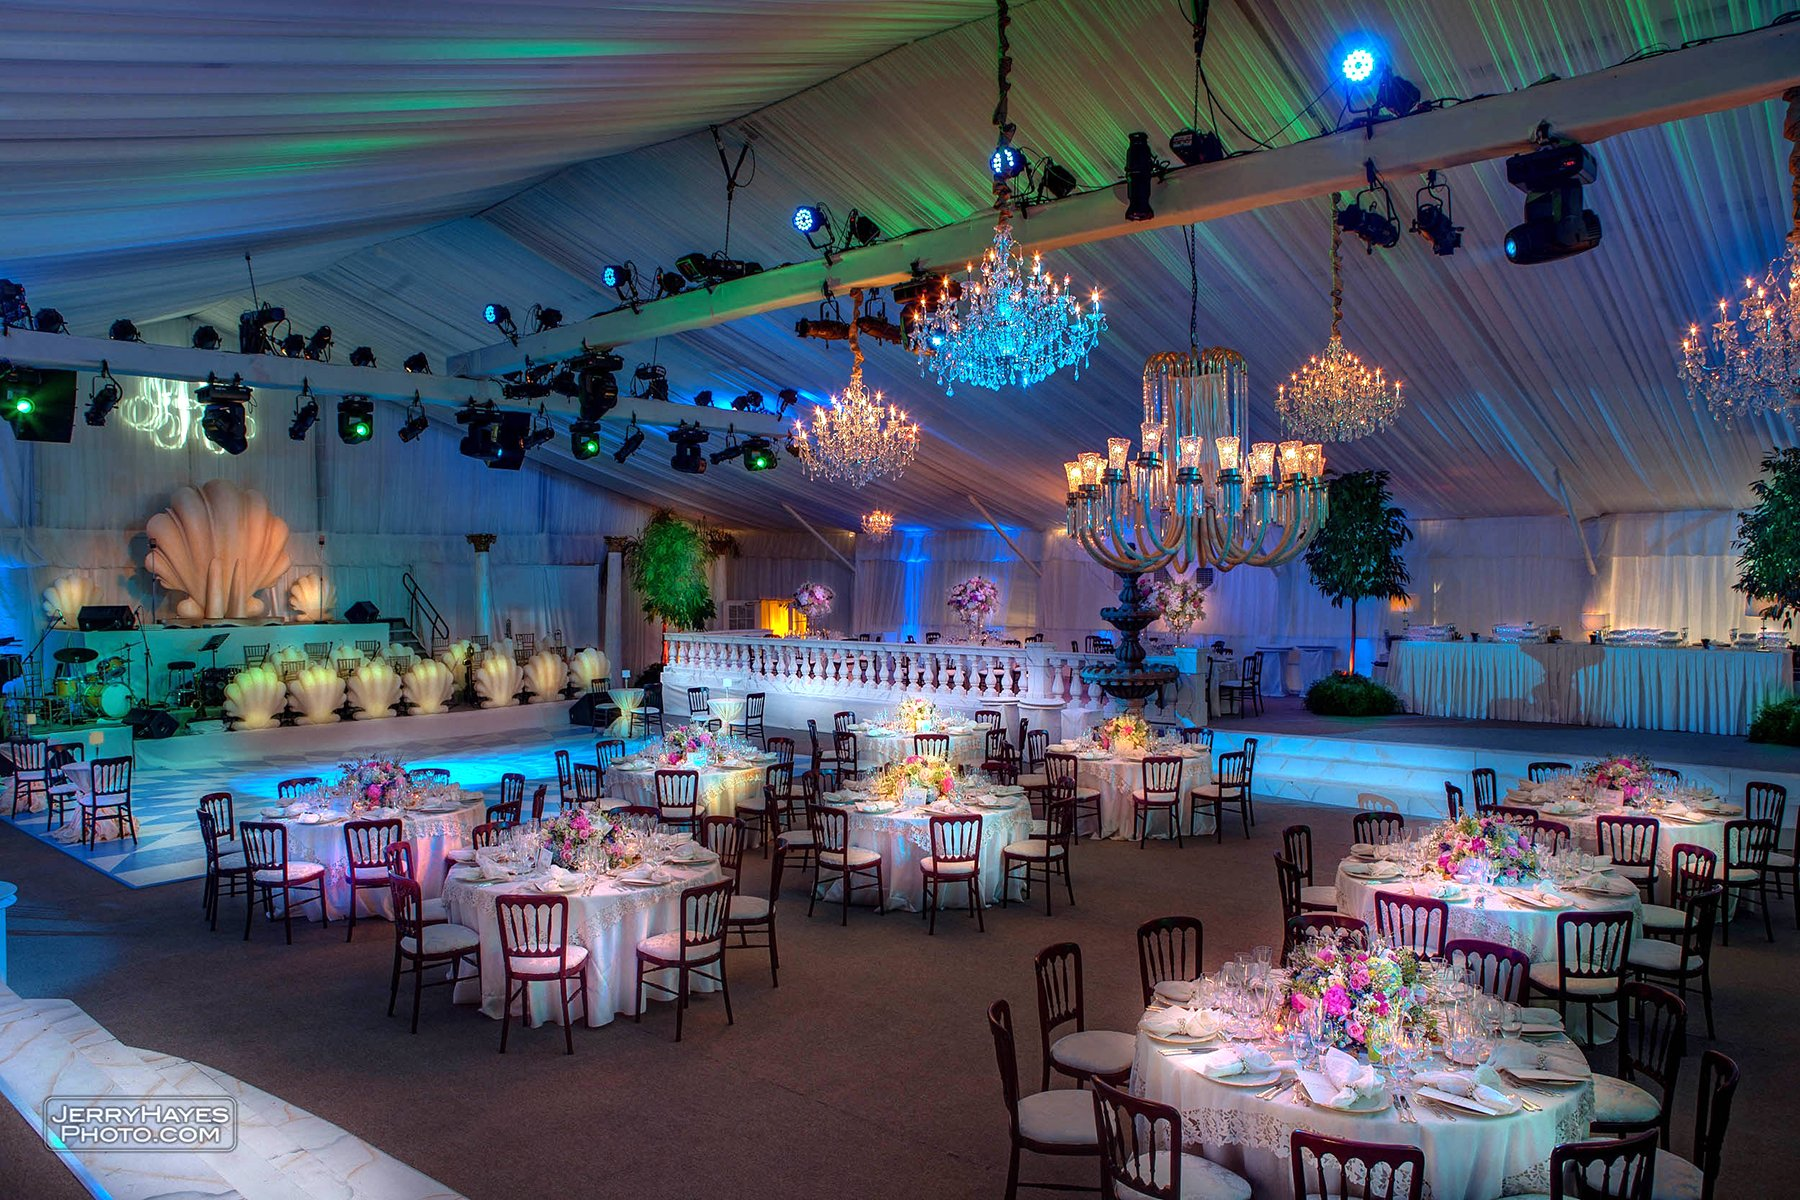 A magical banquet room as produced by Illusions Tents, Rentals, and Event Design!